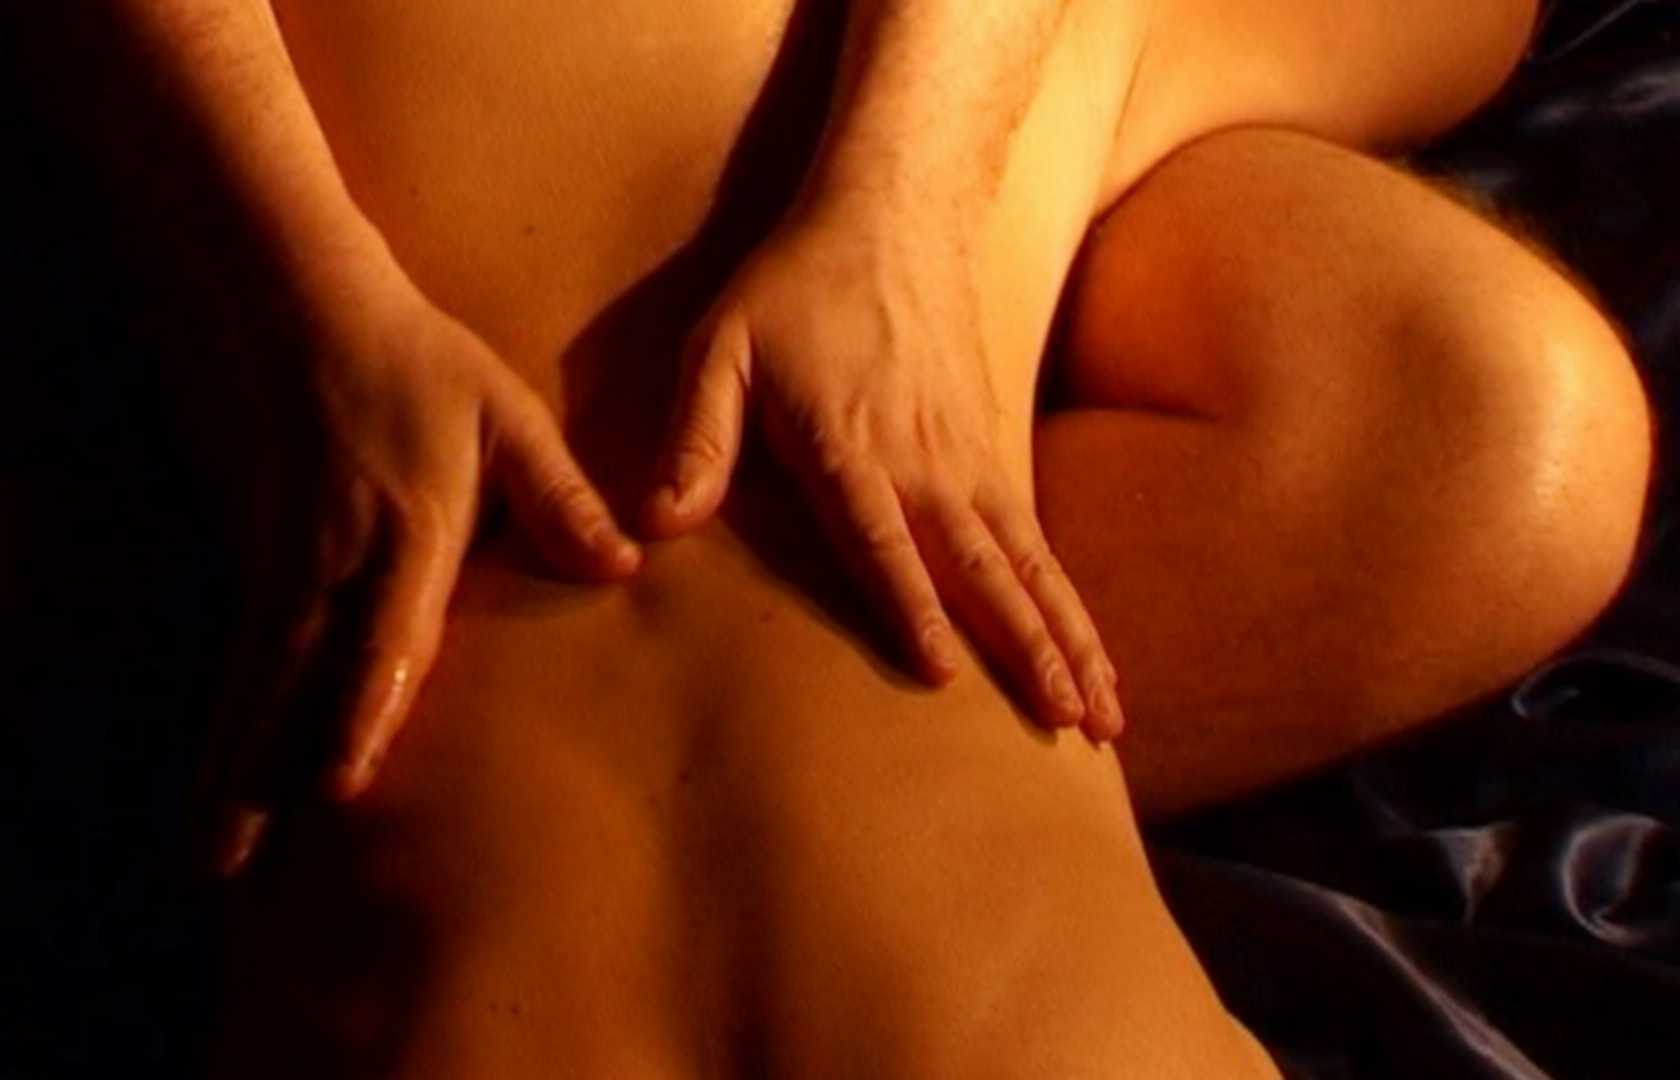 francais porn massage erotique lorient